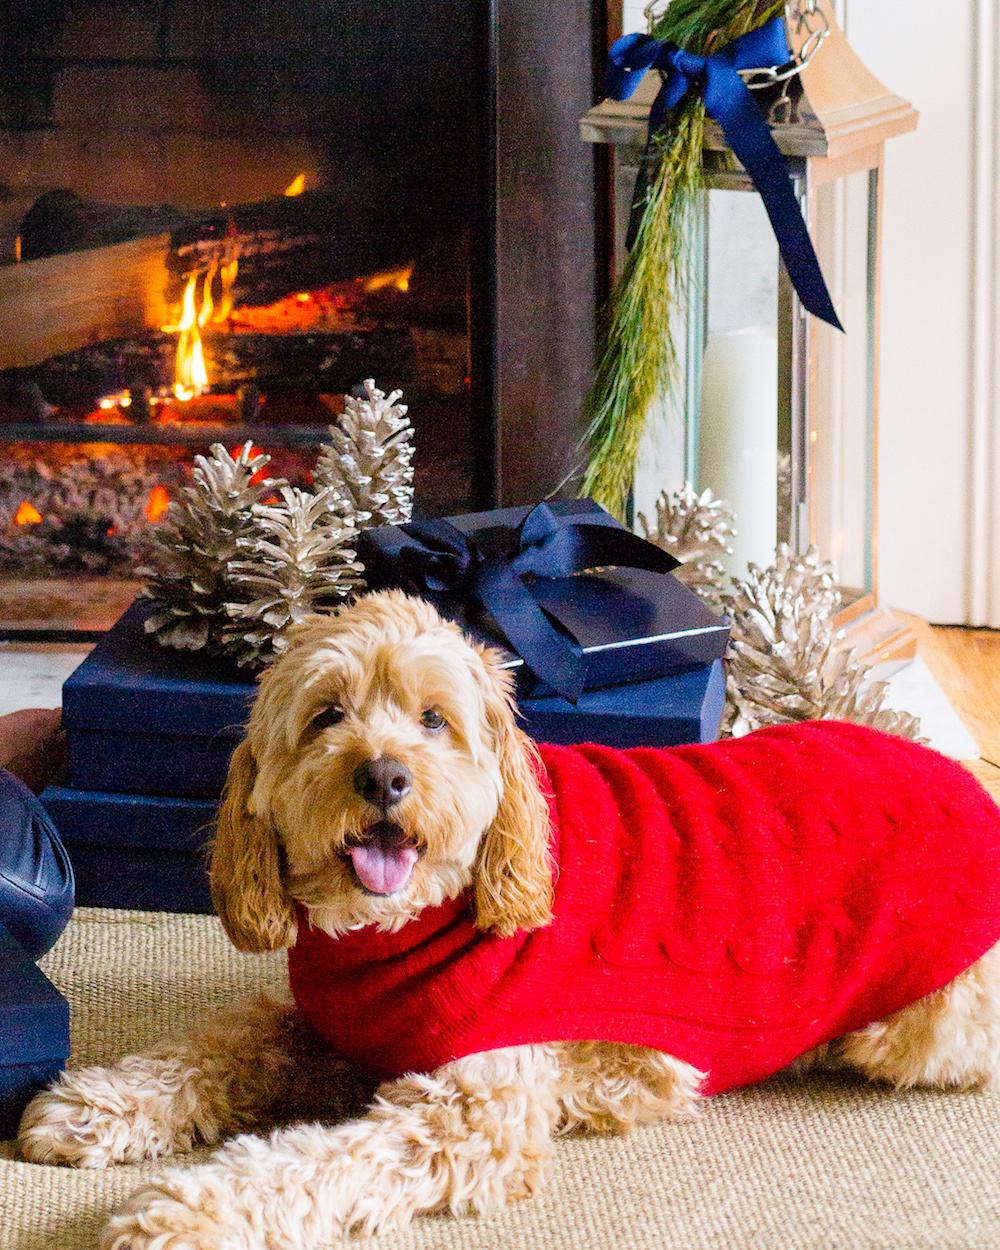 Ralph Lauren Cable Cashmere Dog Sweater Sizing Design Darling